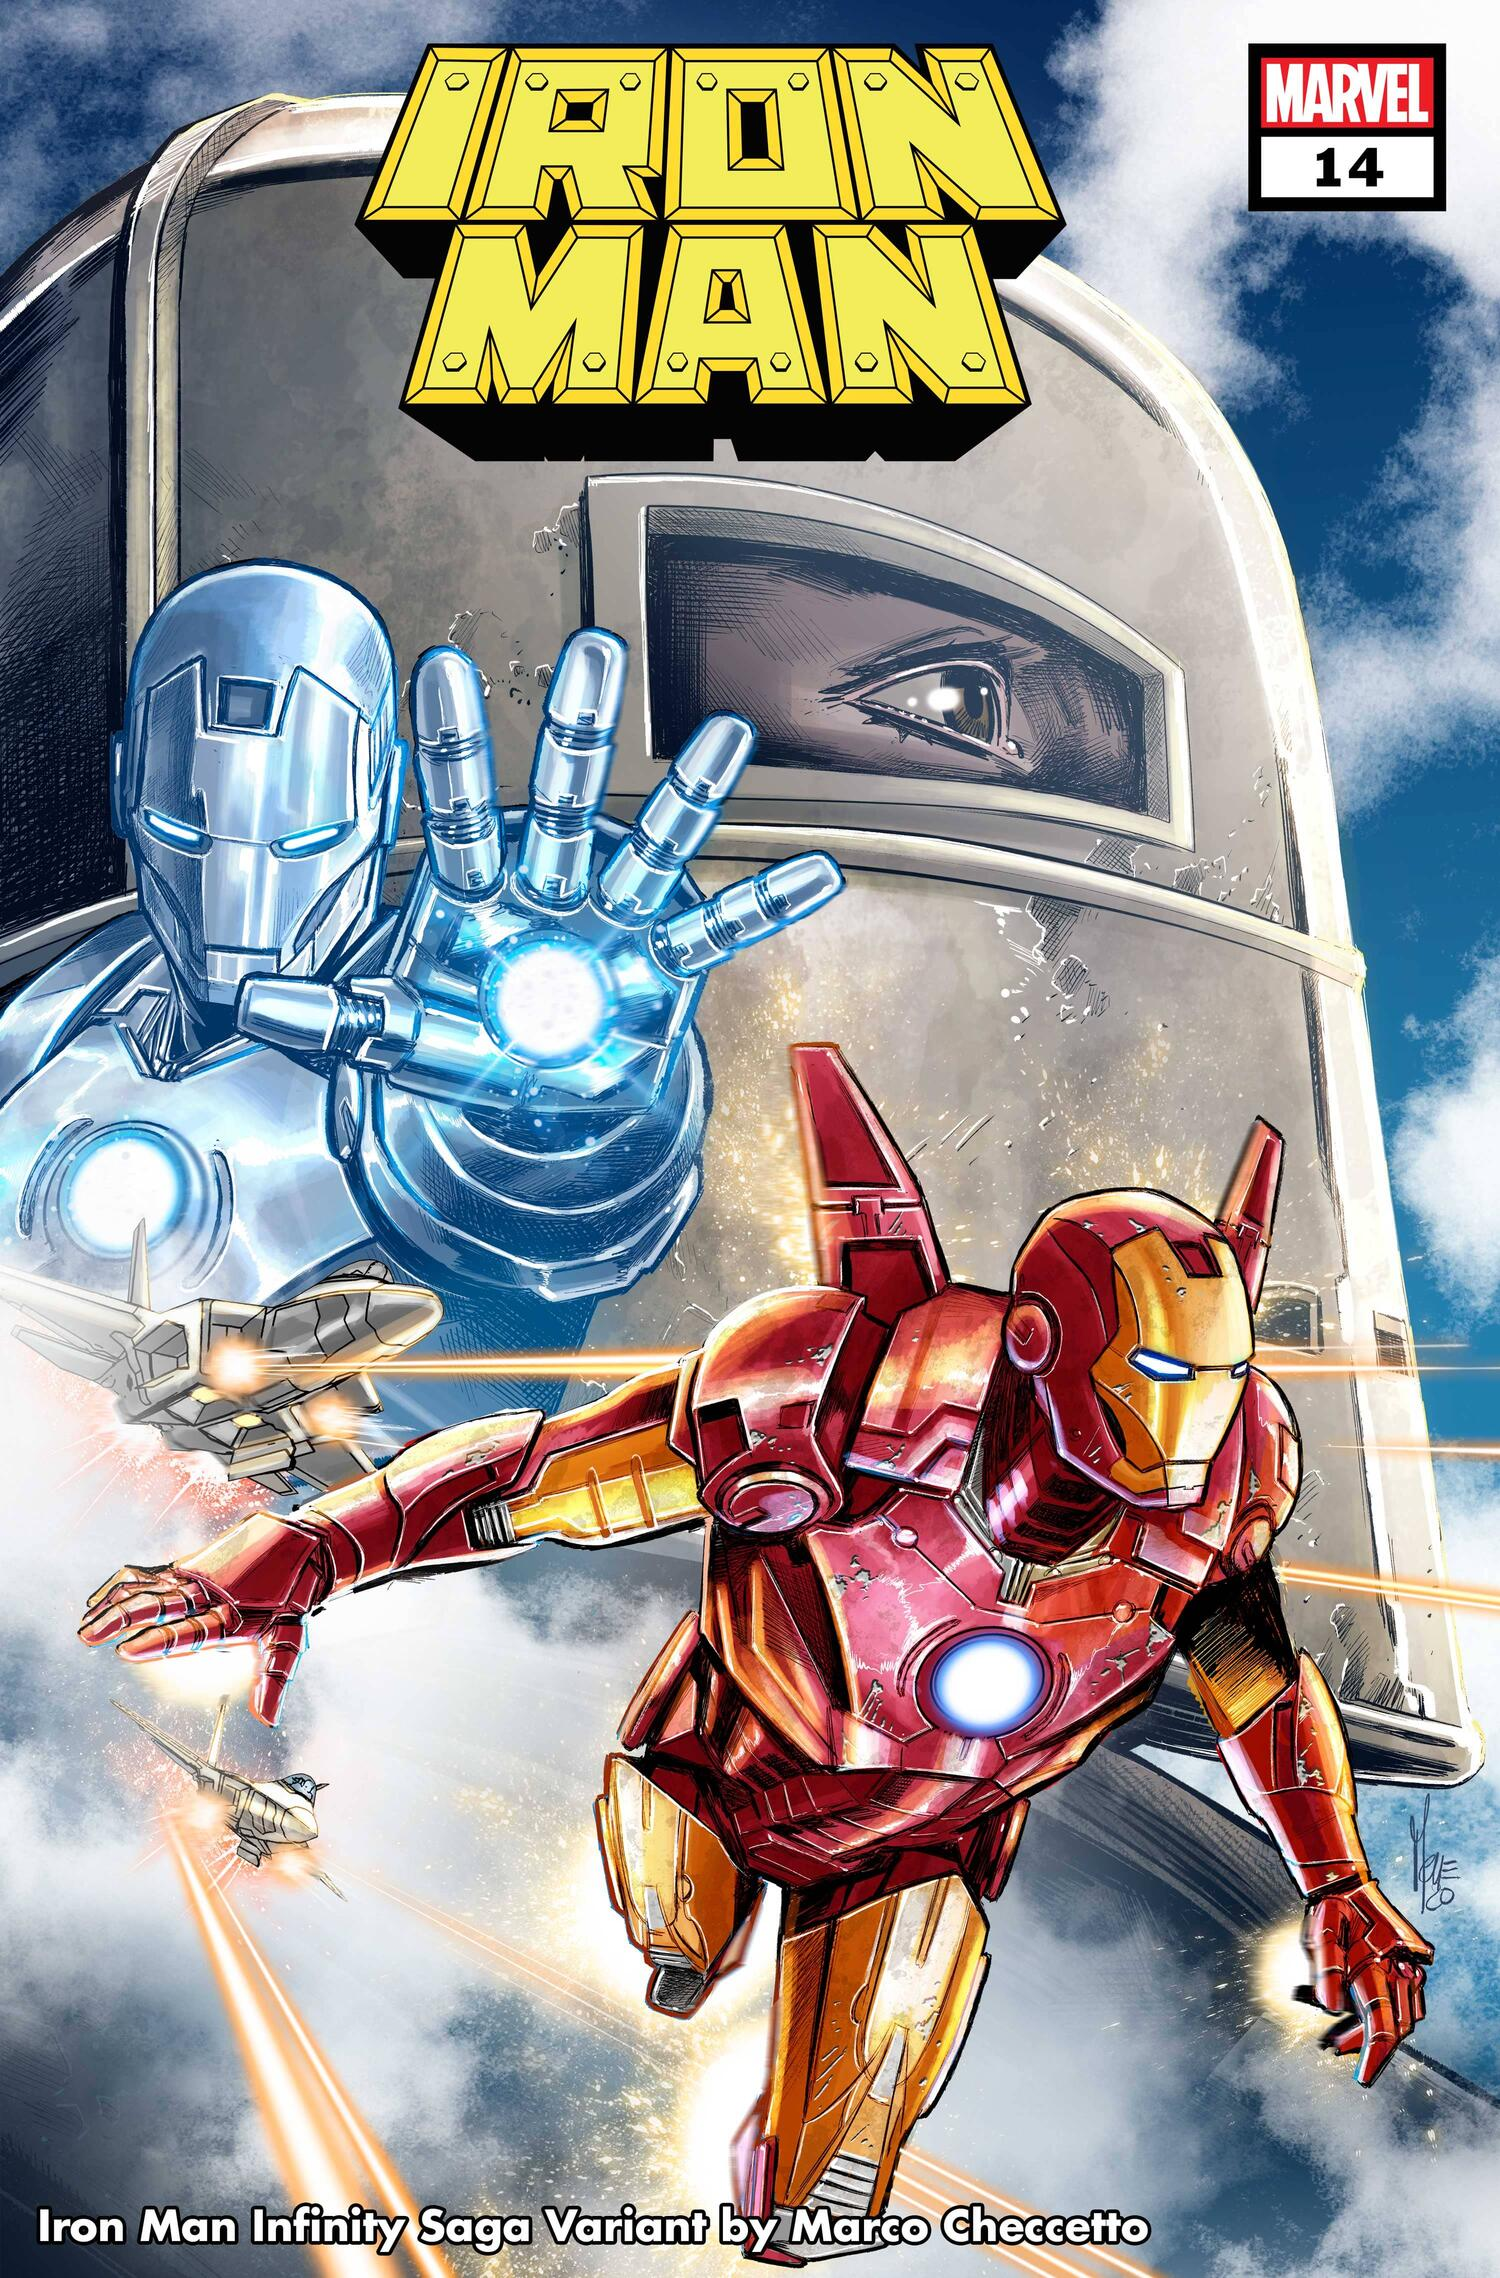 IRON MAN #14 INFINITY SAGA VARIANT COVER by MARCO CHECCETTO